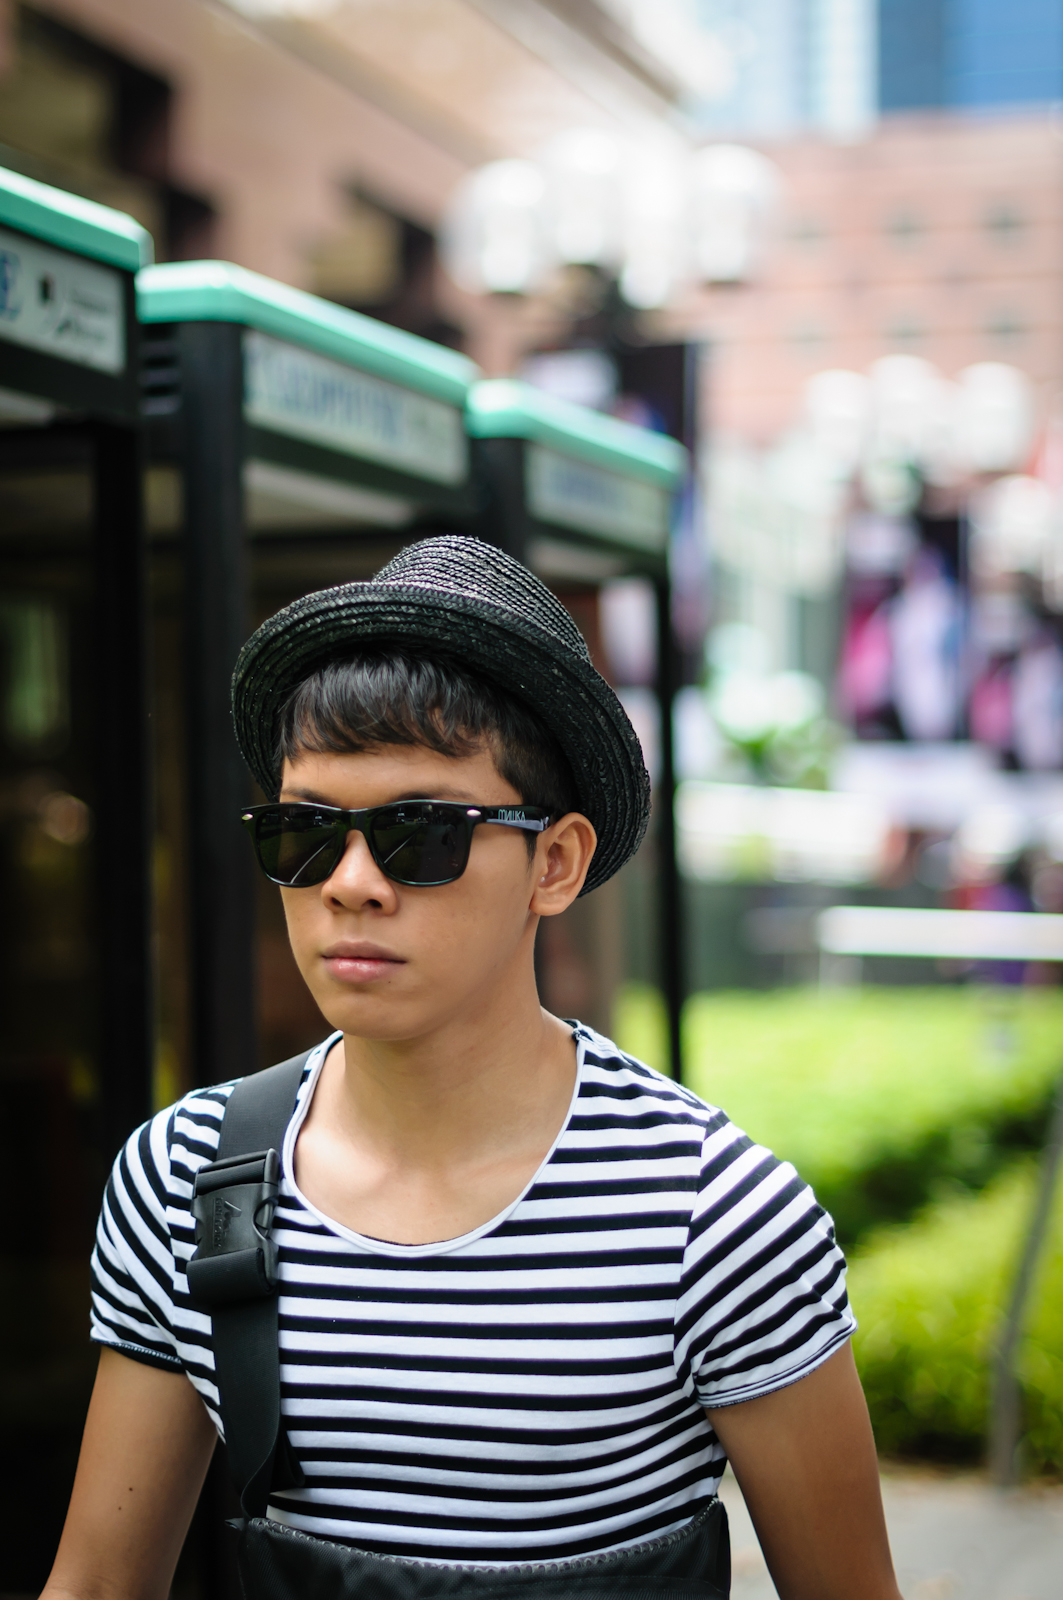 Street photography - man with a hat wearing shades and stripes